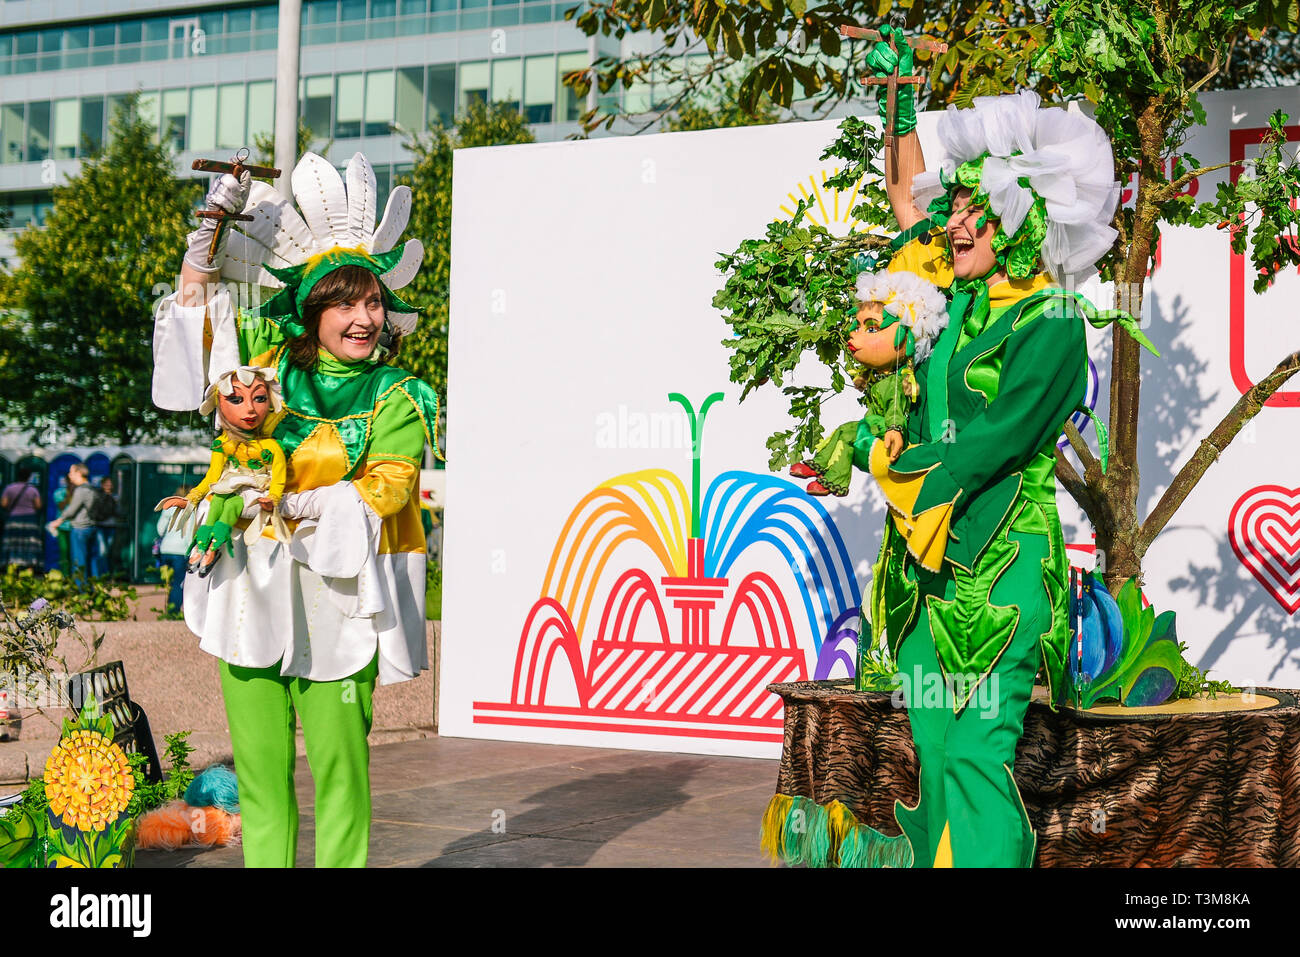 Russia, city Moscow - September 6, 2014: Puppet actors play show on the street. Puppets in the hands of professional actors. Entertainment - Stock Image